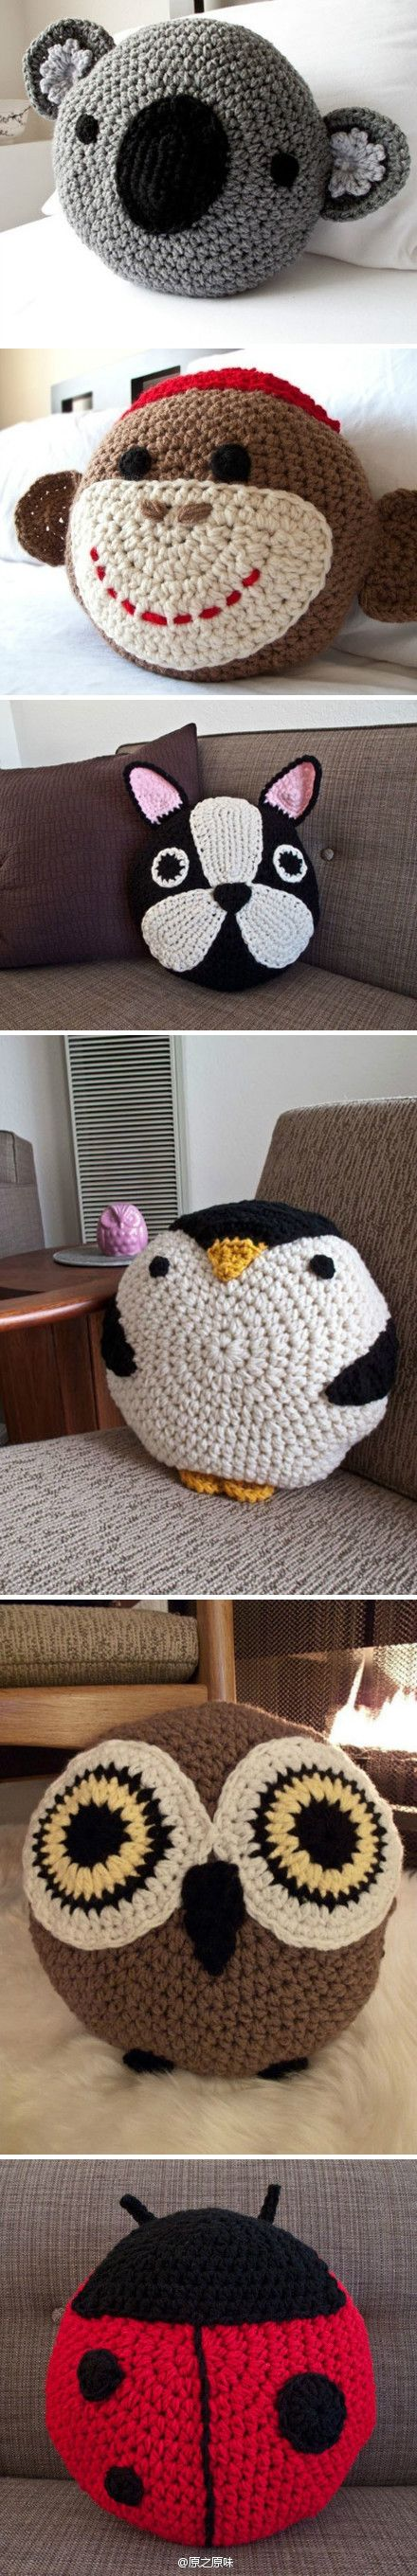 There are all so adorable, especially the owl (and the penguin). Too bad everything's in Chinese (or some such language). But, they don't look too hard to recreate as they all start with a large circle.: